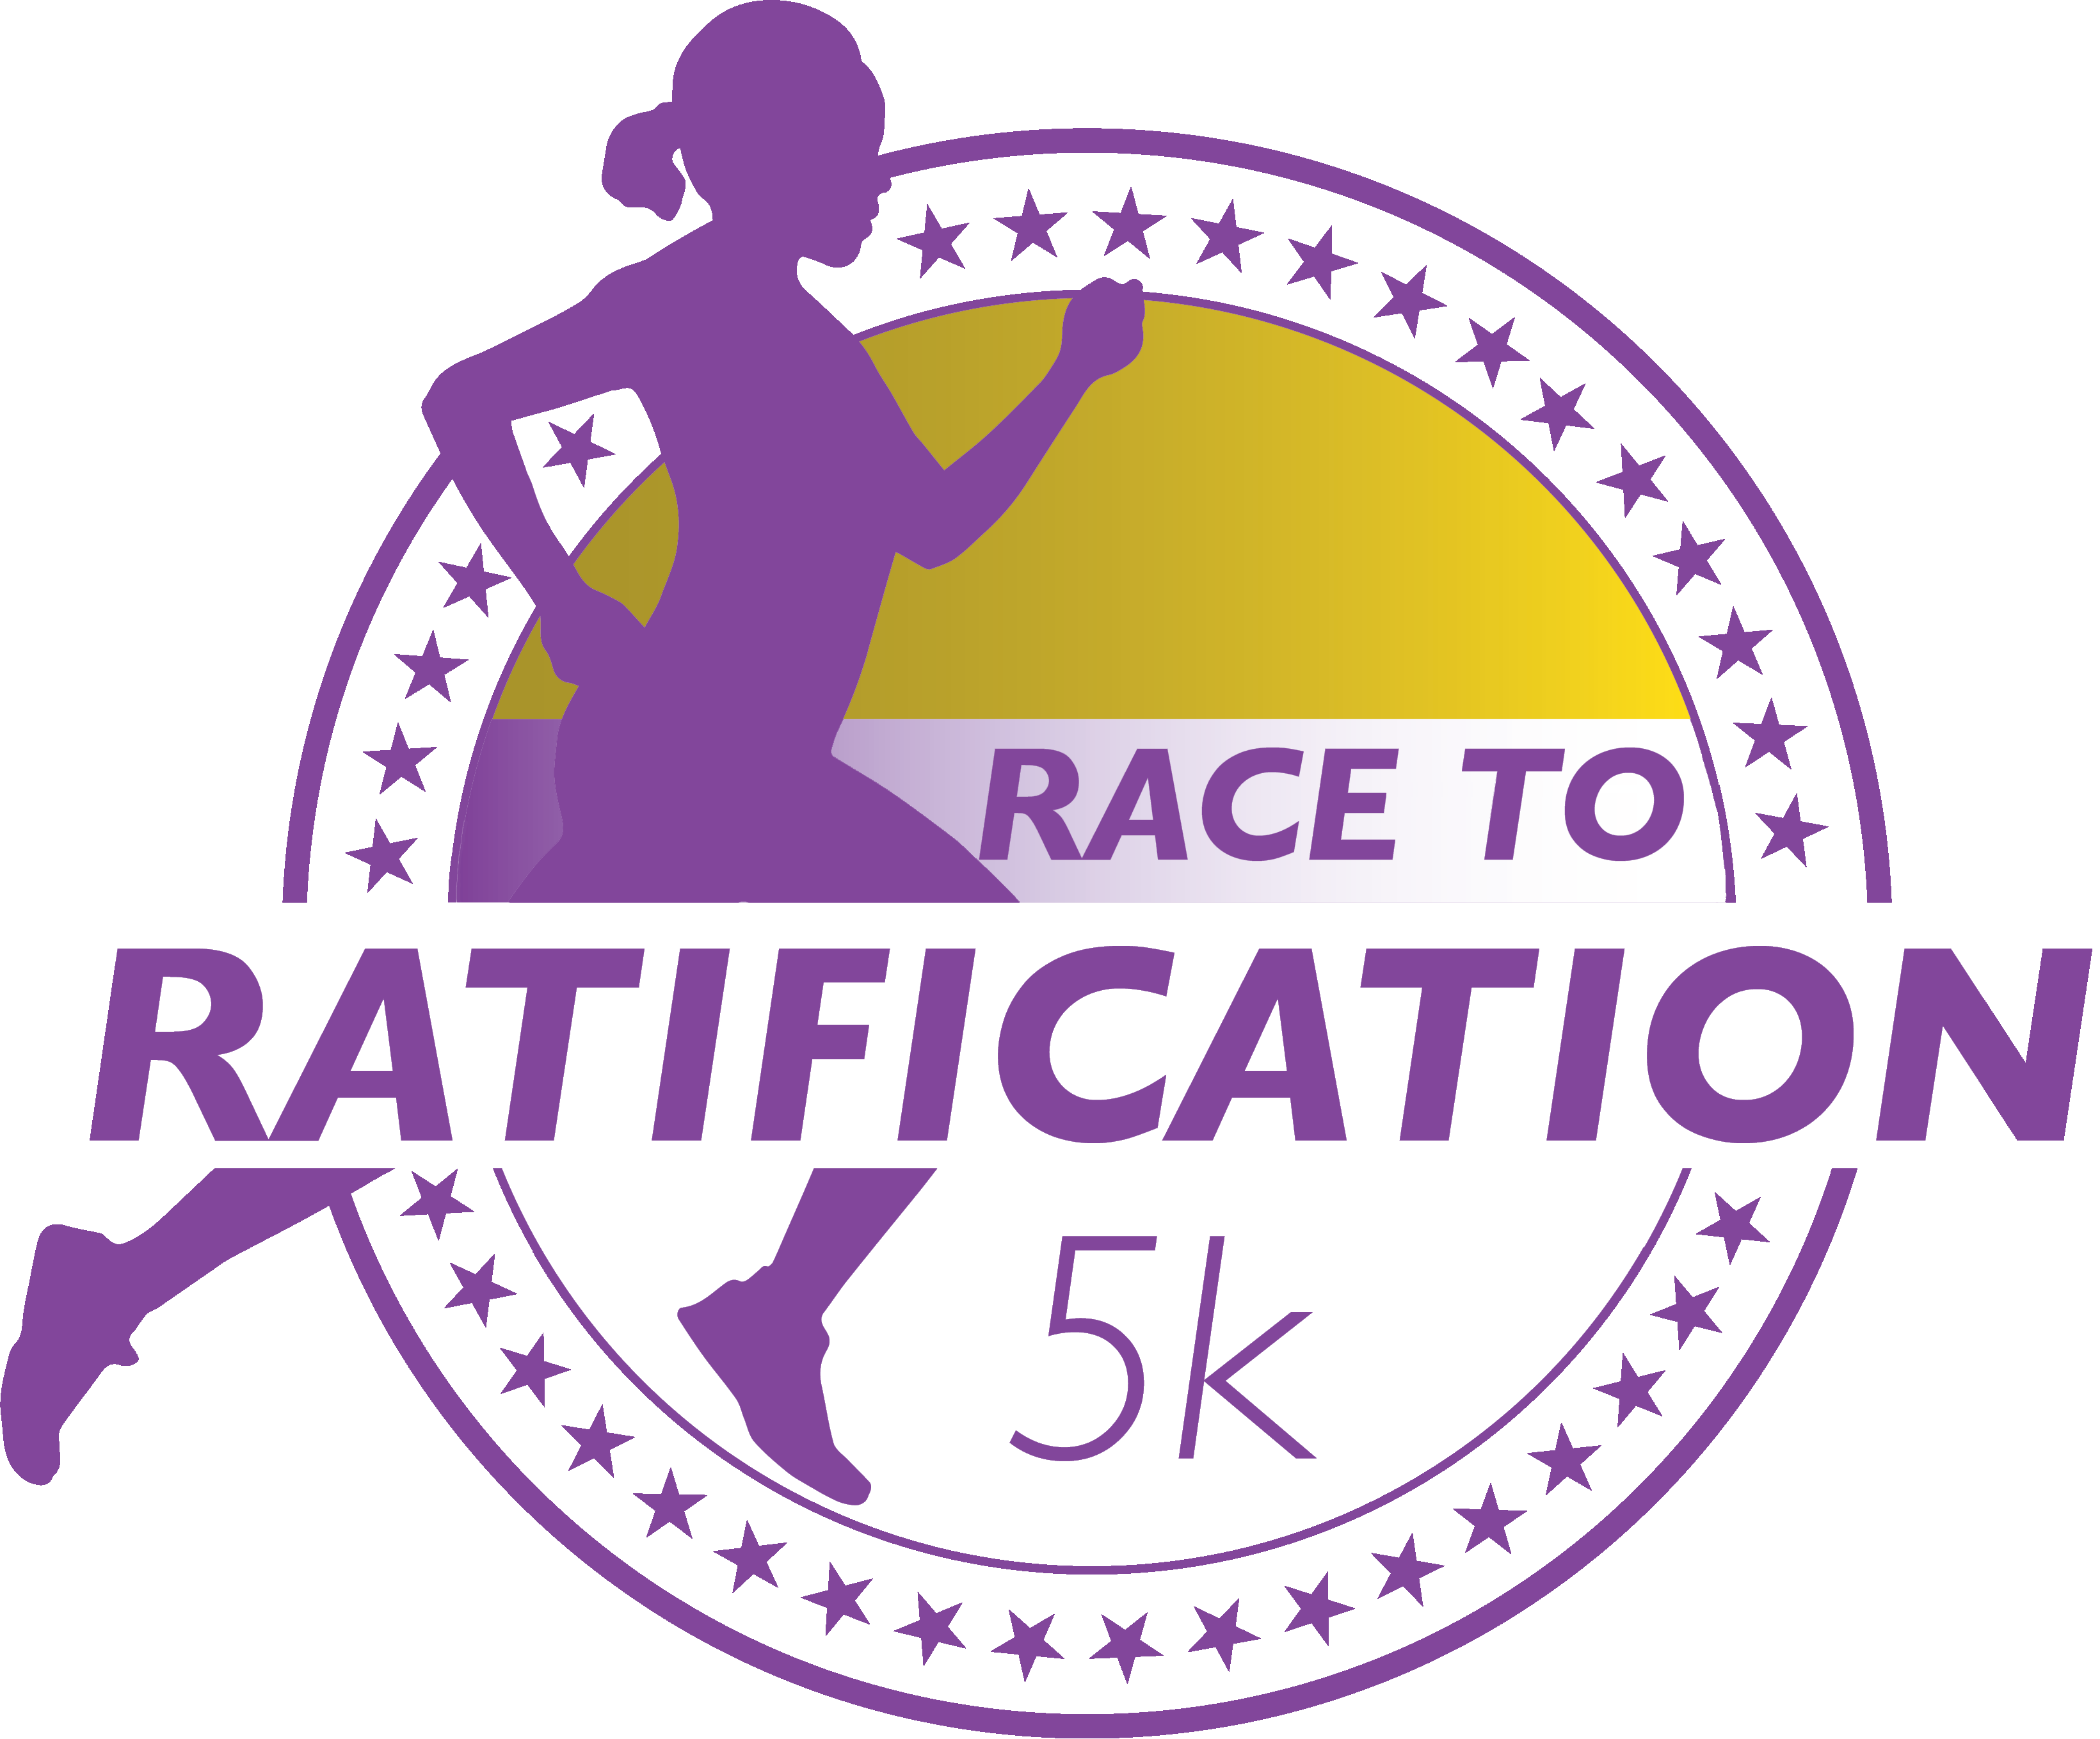 Race to Ratification Logo: the silhouette of a woman running with a circle of stars behind her. The words Race to Ratification appear in the circle.